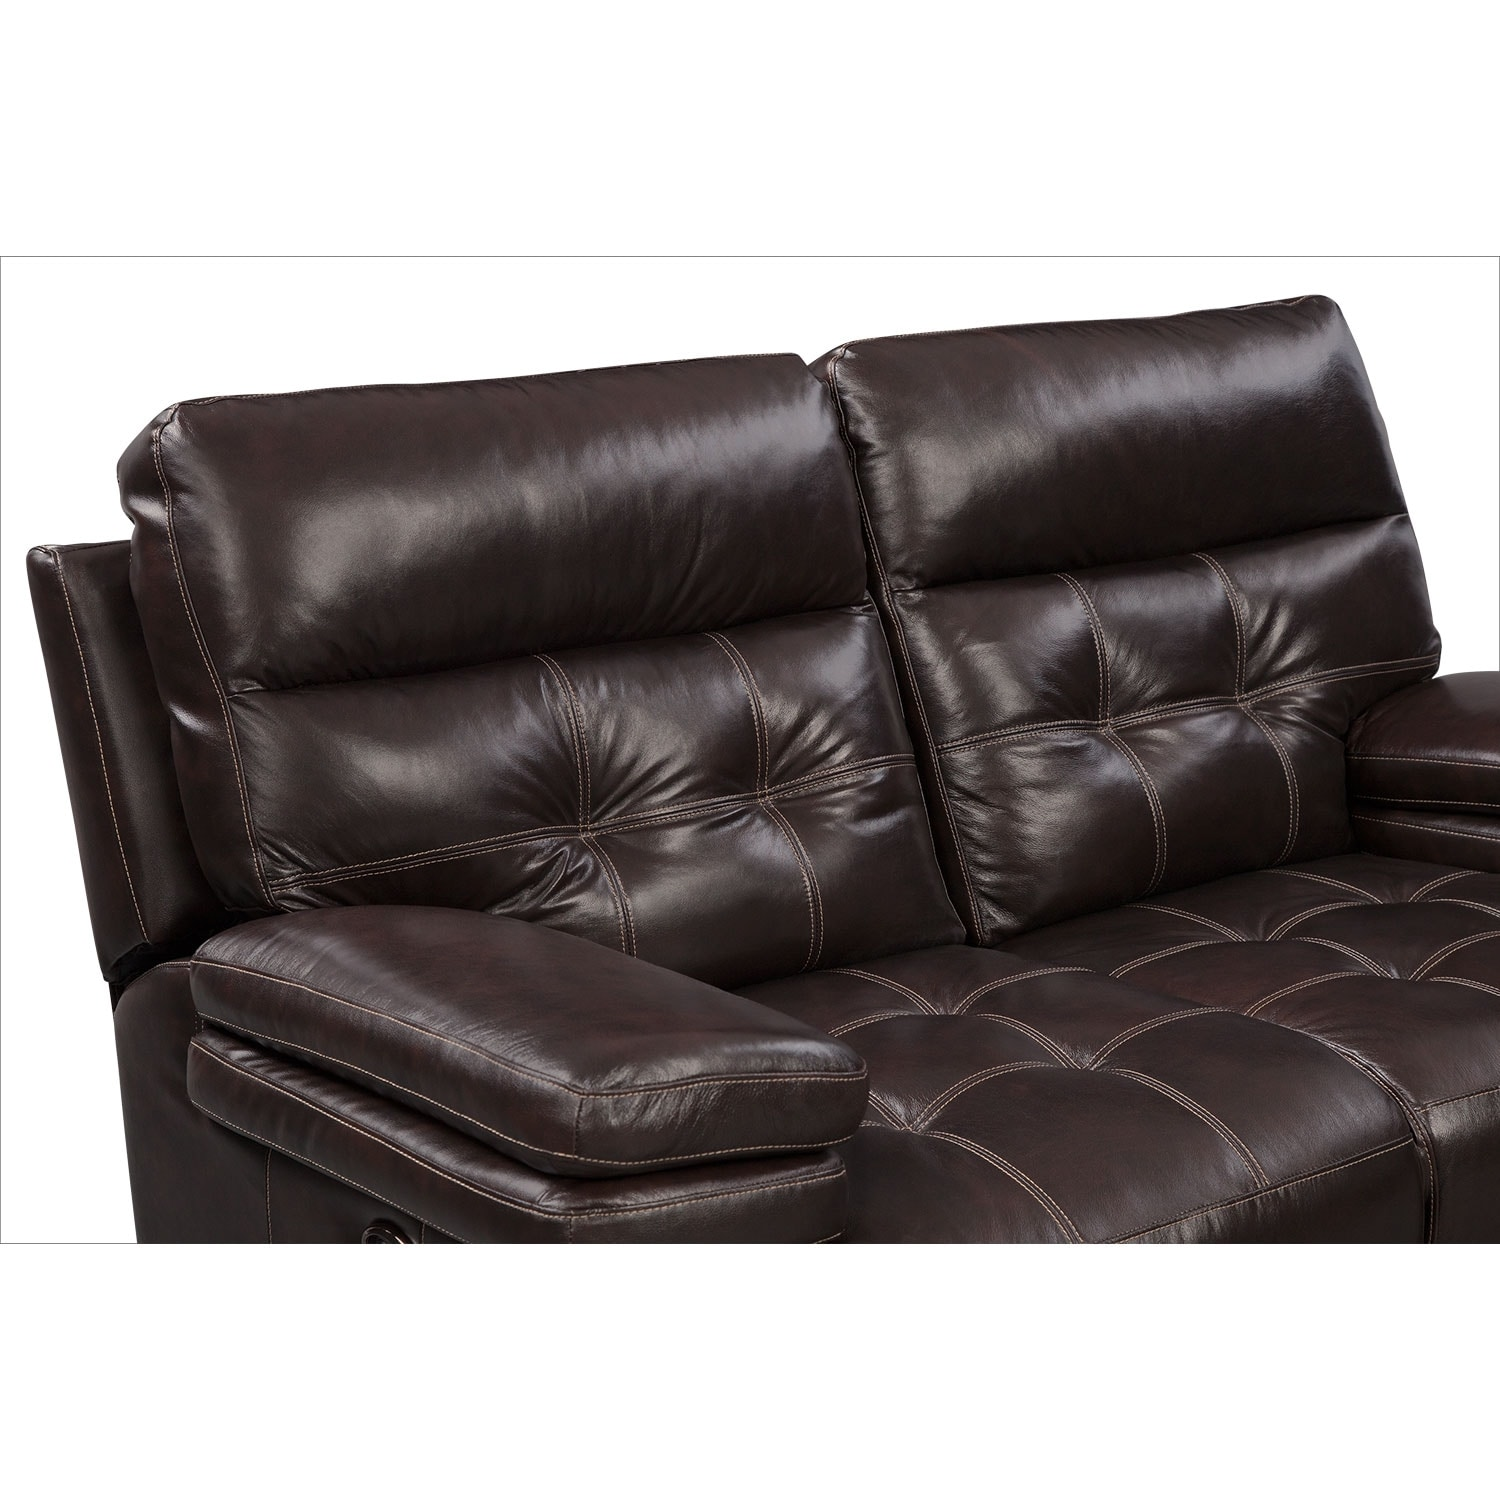 Brisco Power Reclining Loveseat Brown Value City Furniture